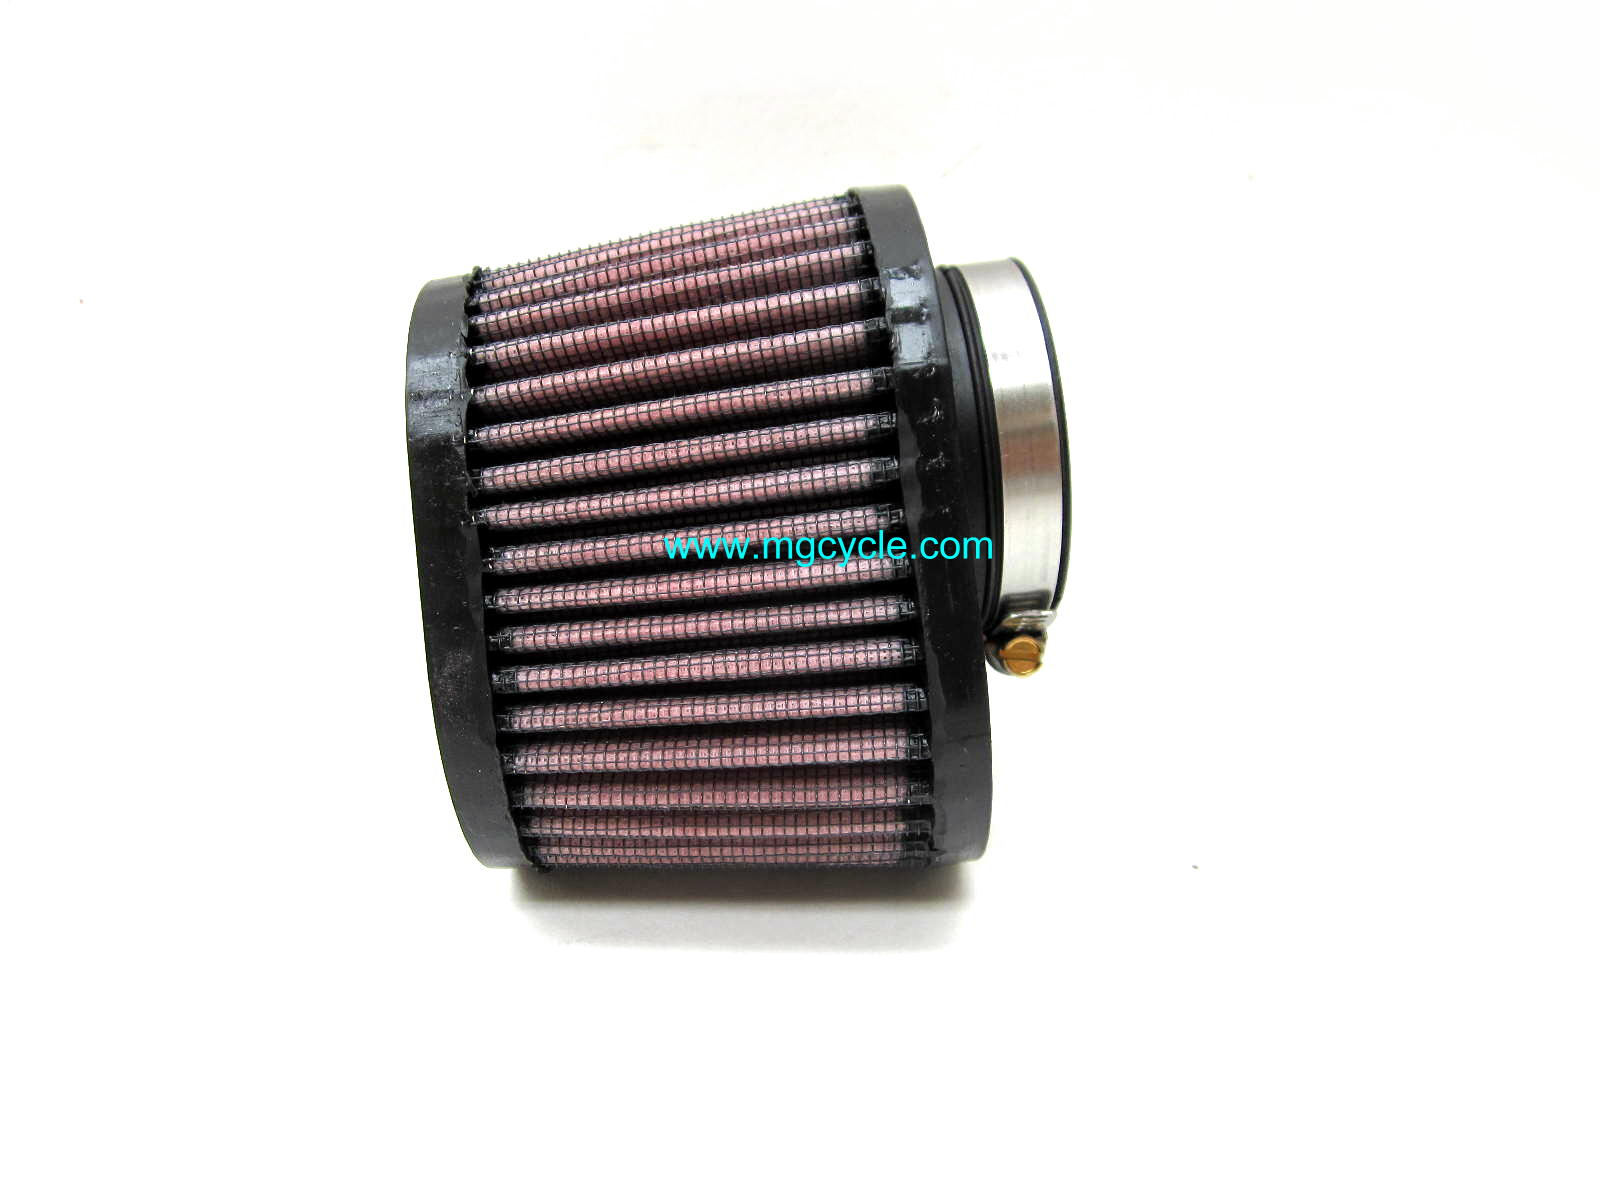 K&N air filter, for PHF30, 36 - T3 etc style velocity stacks